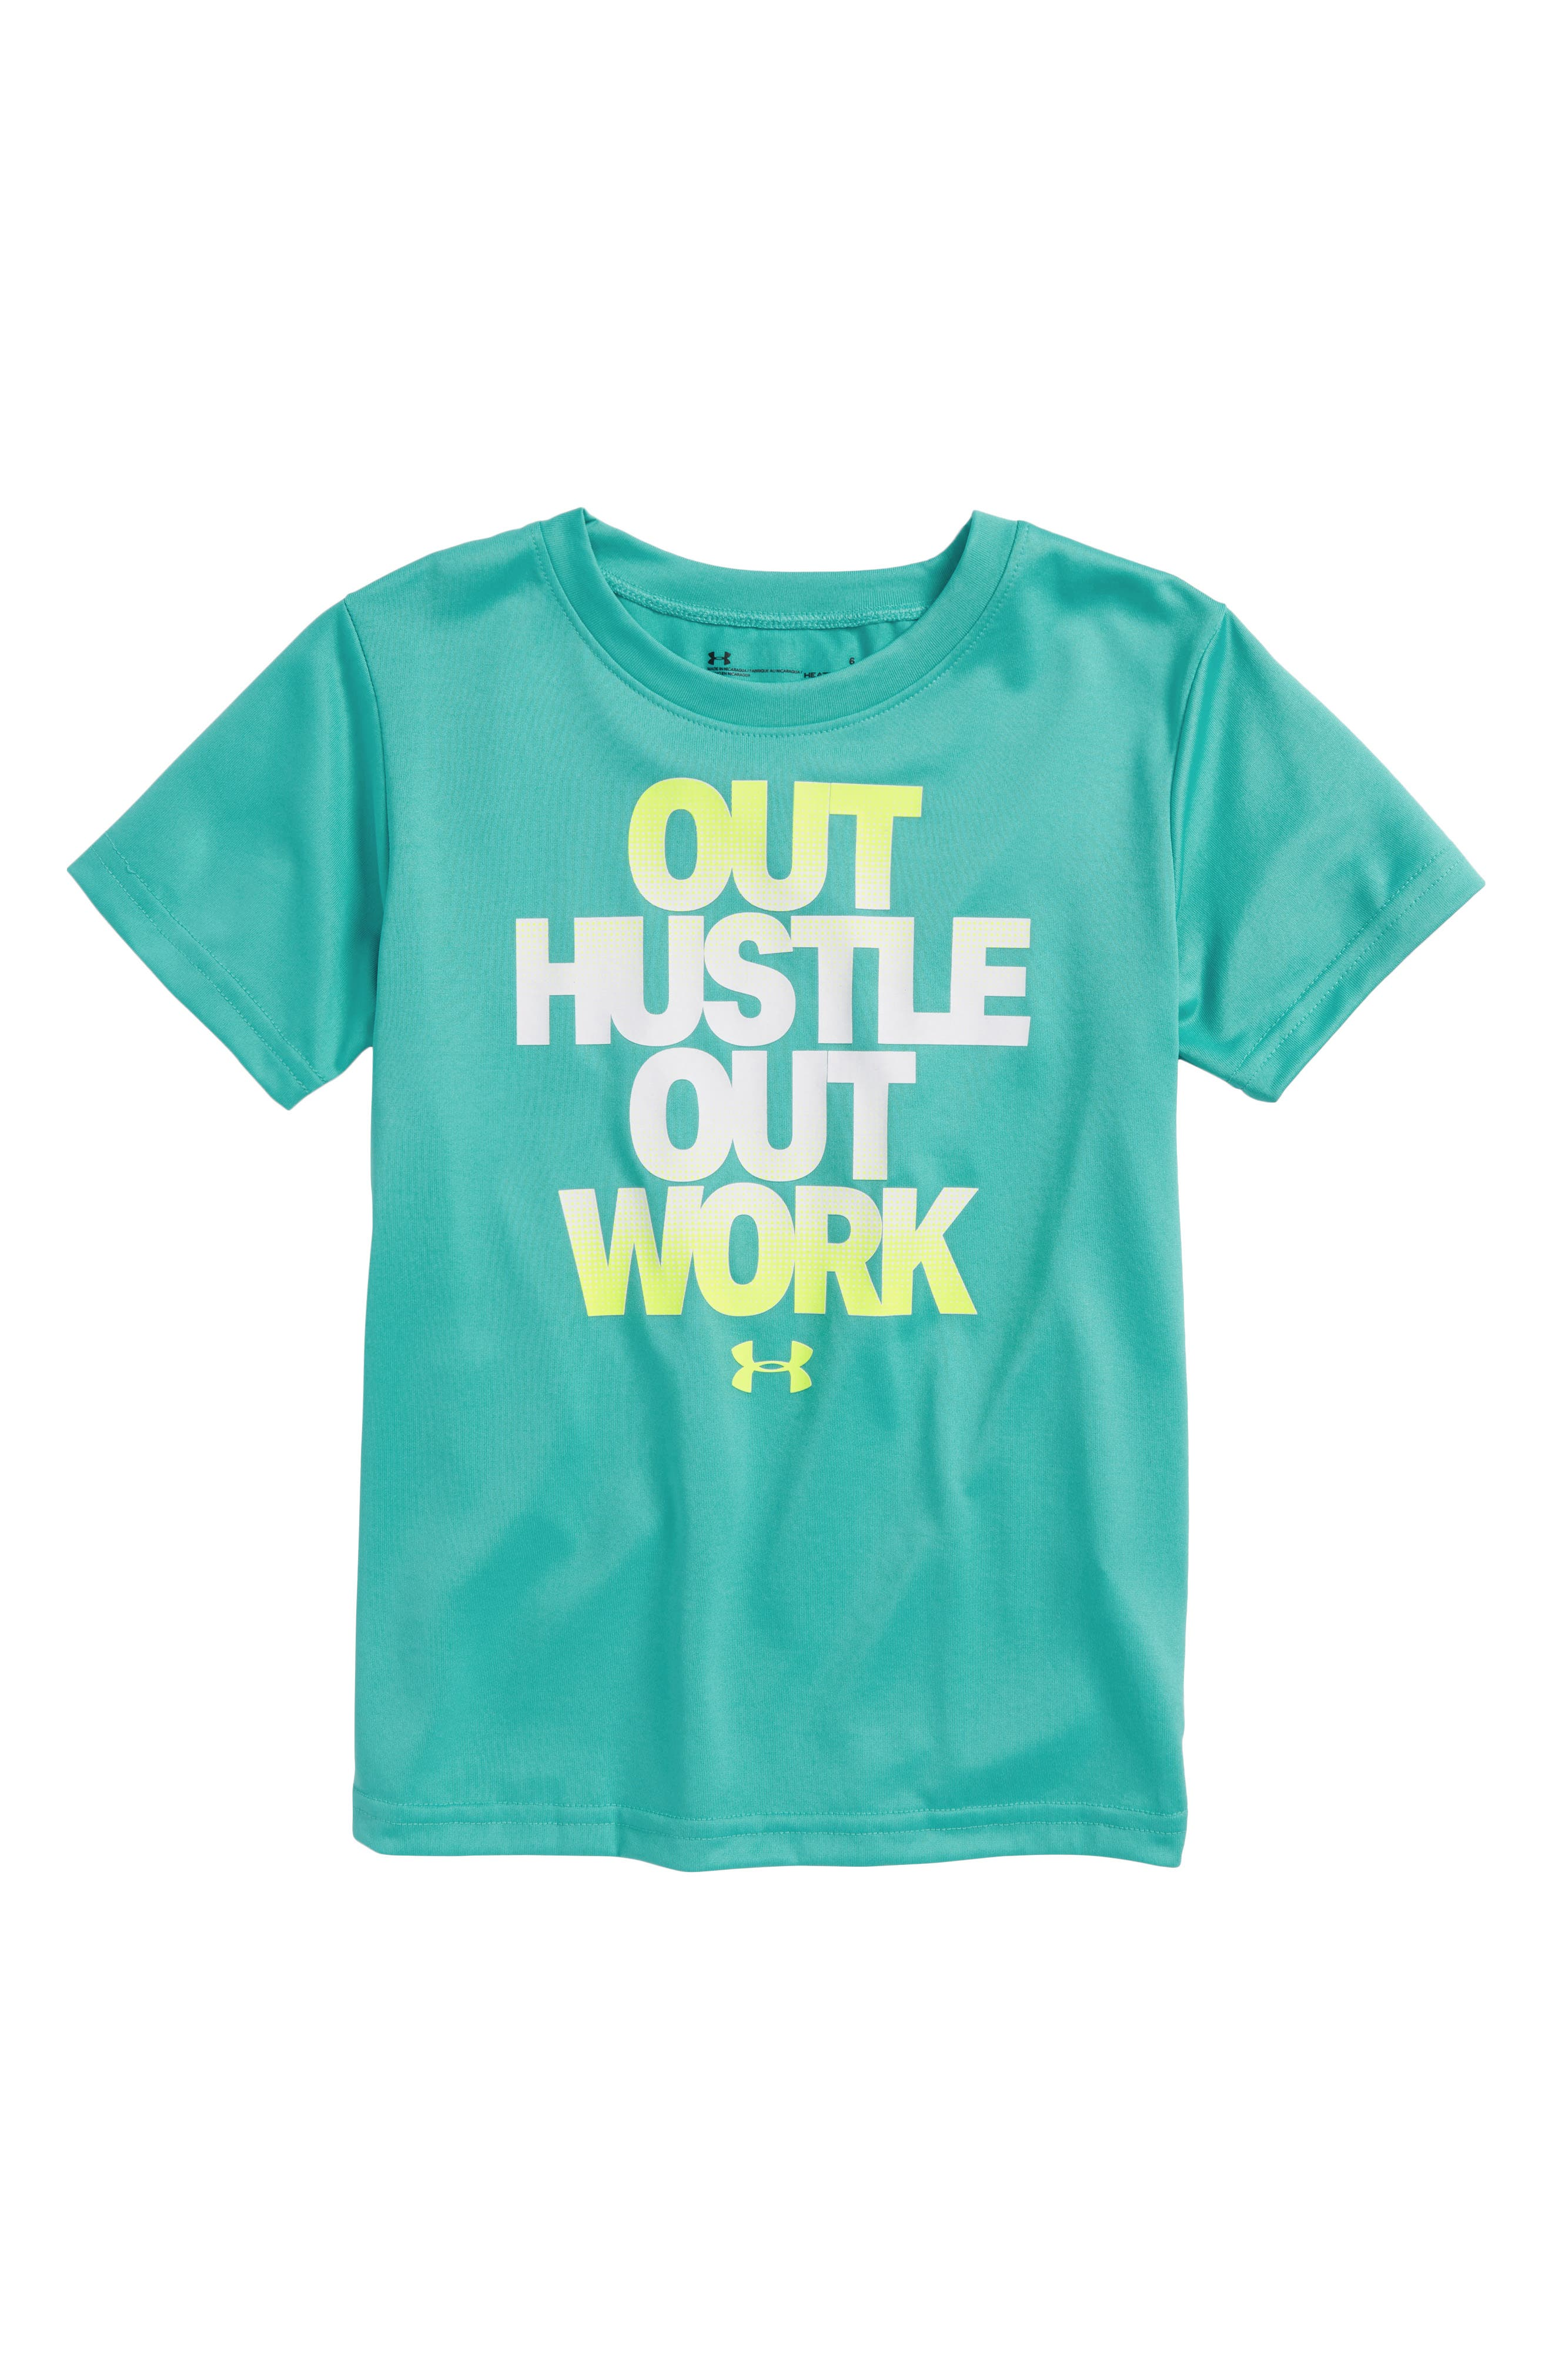 Alternate Image 1 Selected - Under Armour Out Hustle Out Work HeatGear® T-Shirt (Toddler Boys & Little Boys)